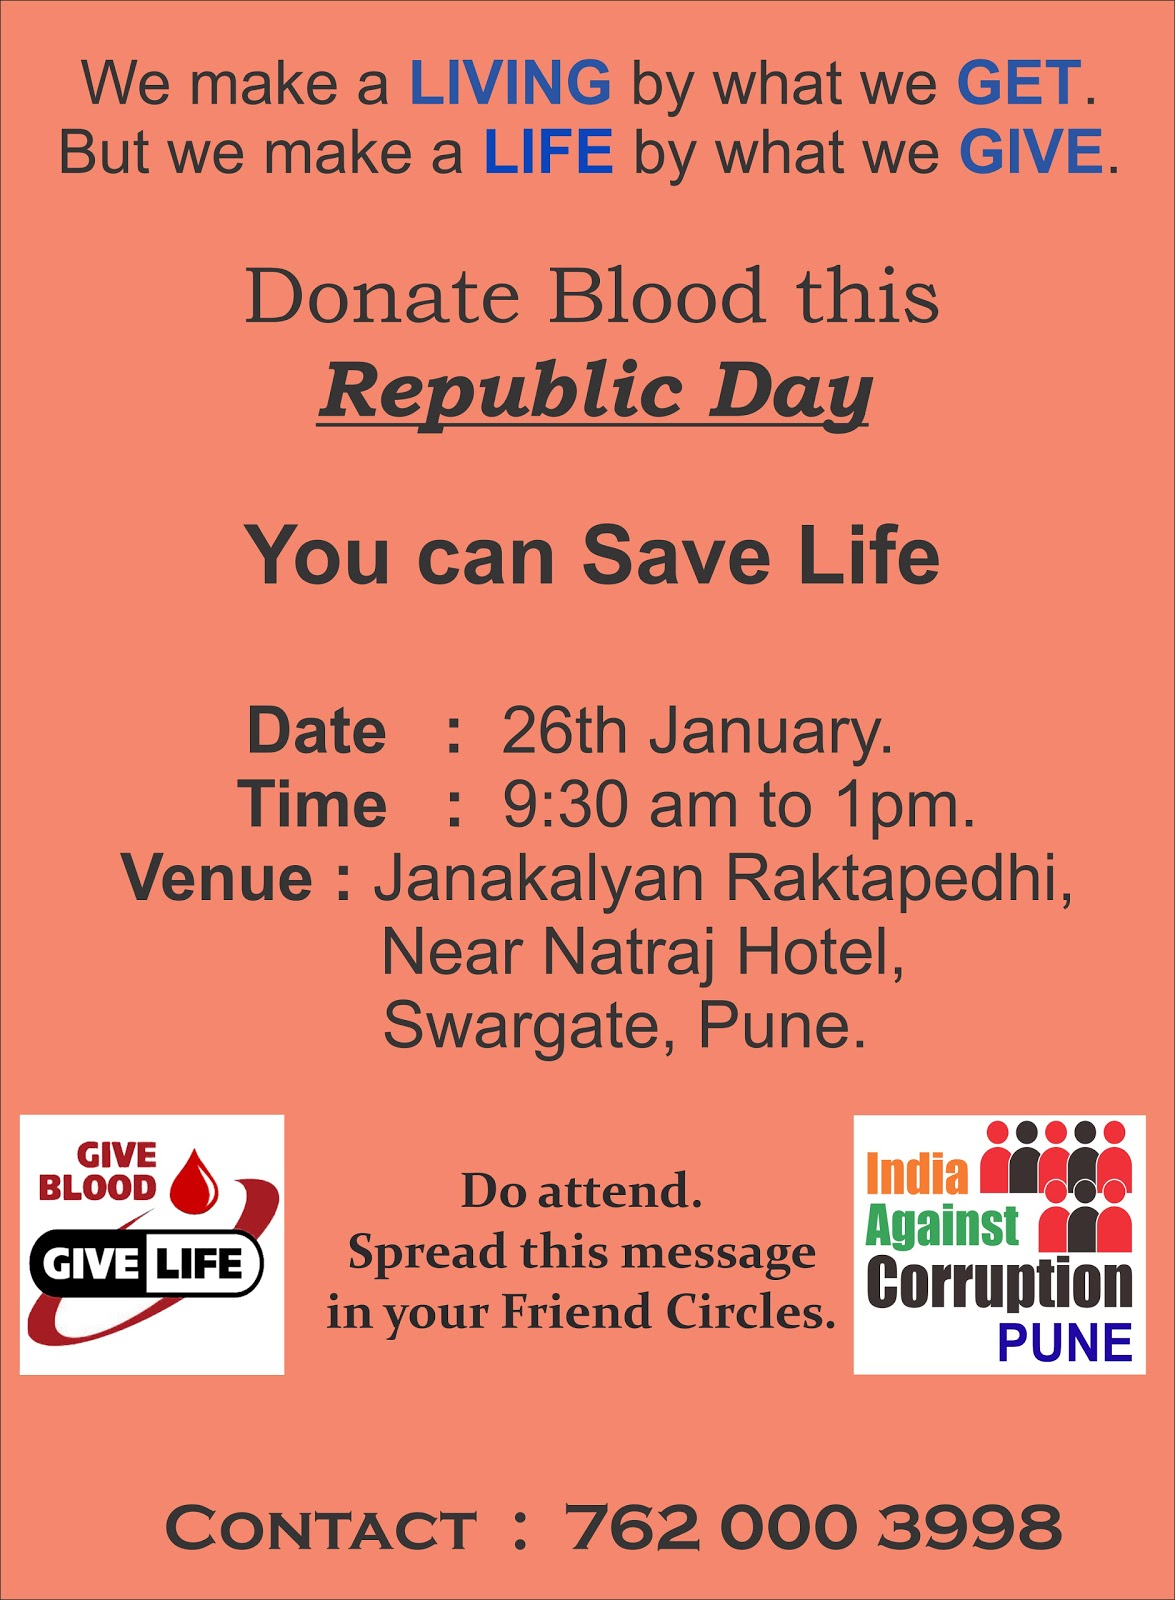 essay on blood donation camp clever essay titles how to write good essay titles that are good how to write good · jincey shraddha richa blood donation